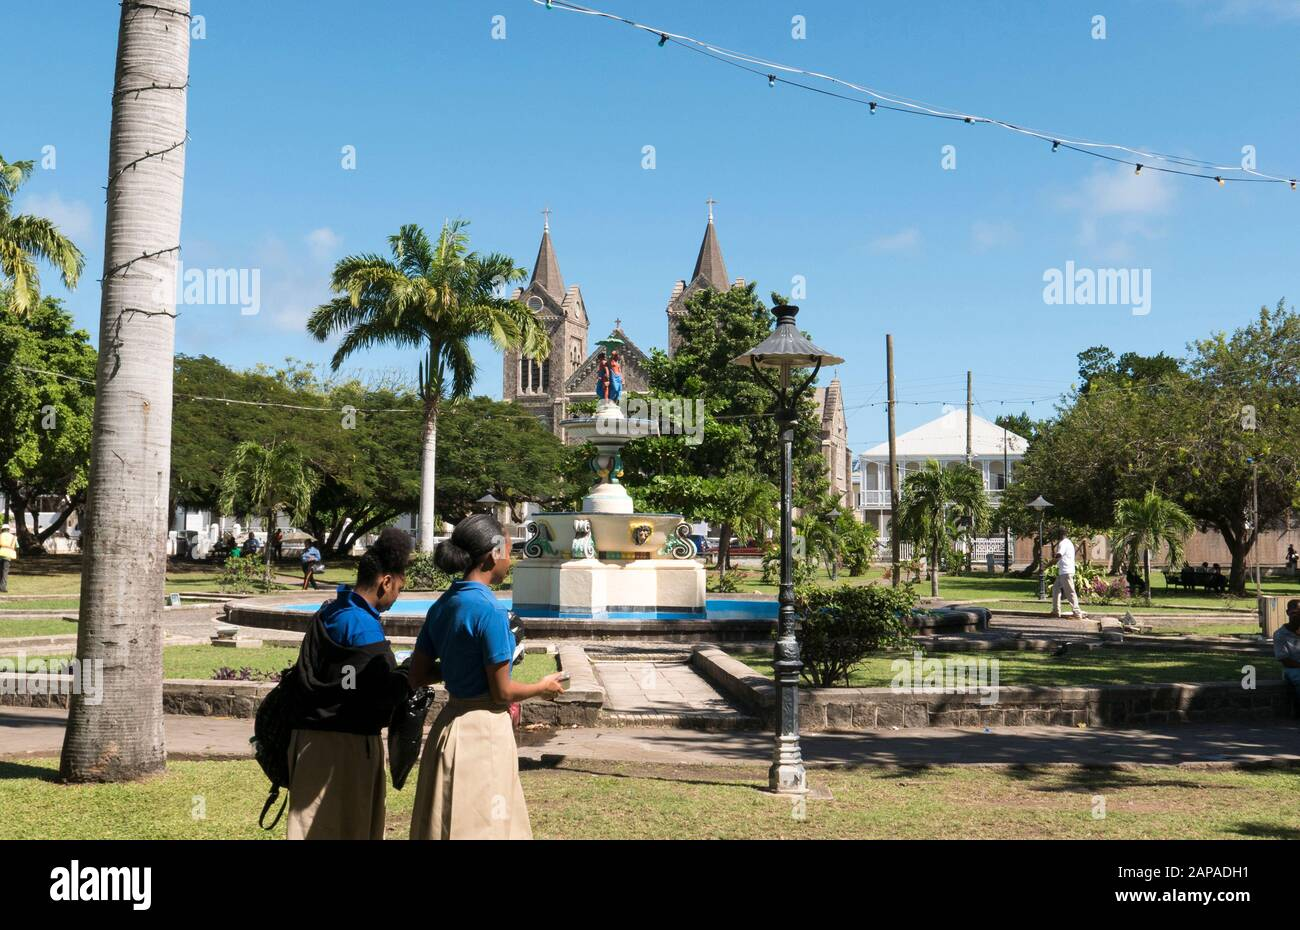 Independence Square Gardens and Fountains in St.Kitts in the Caribbean Stock Photo